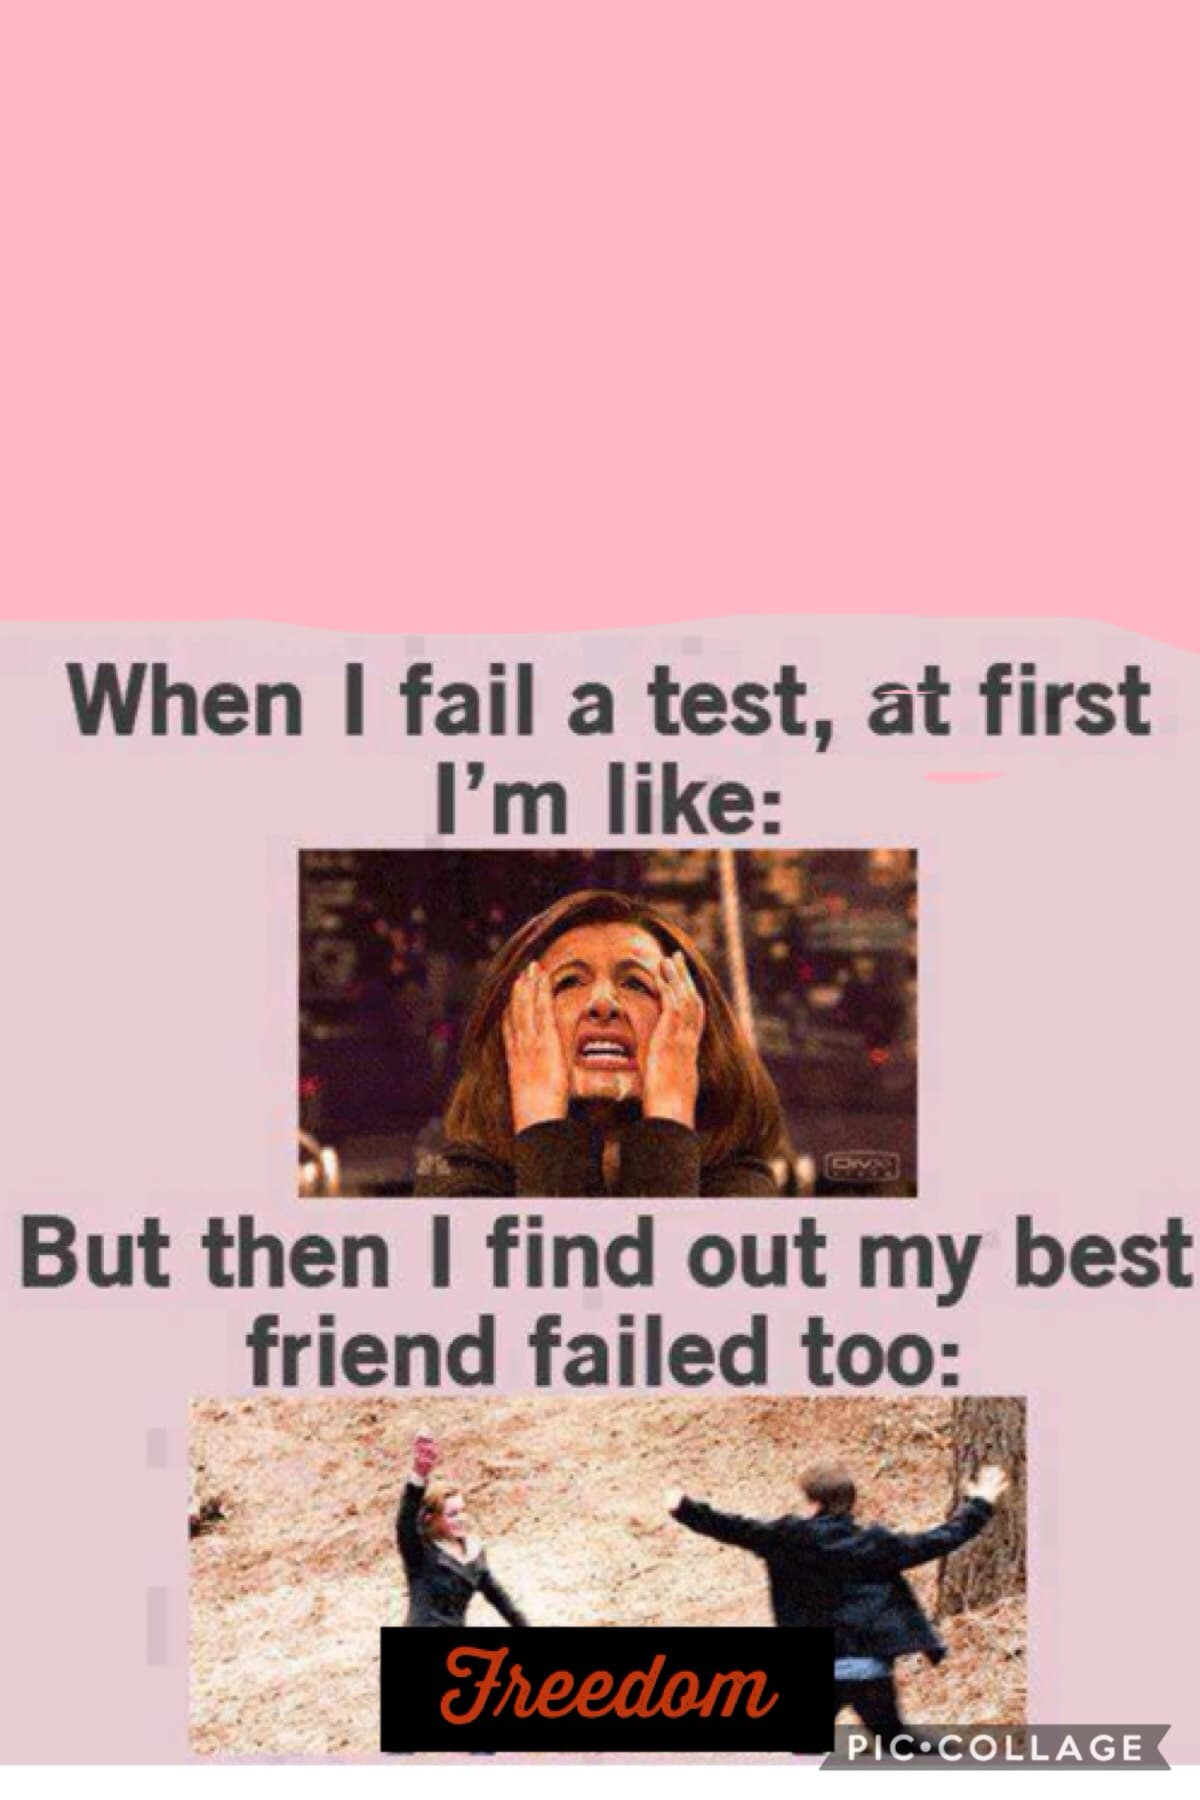 Testing horrible you and your friends fail the test awesome